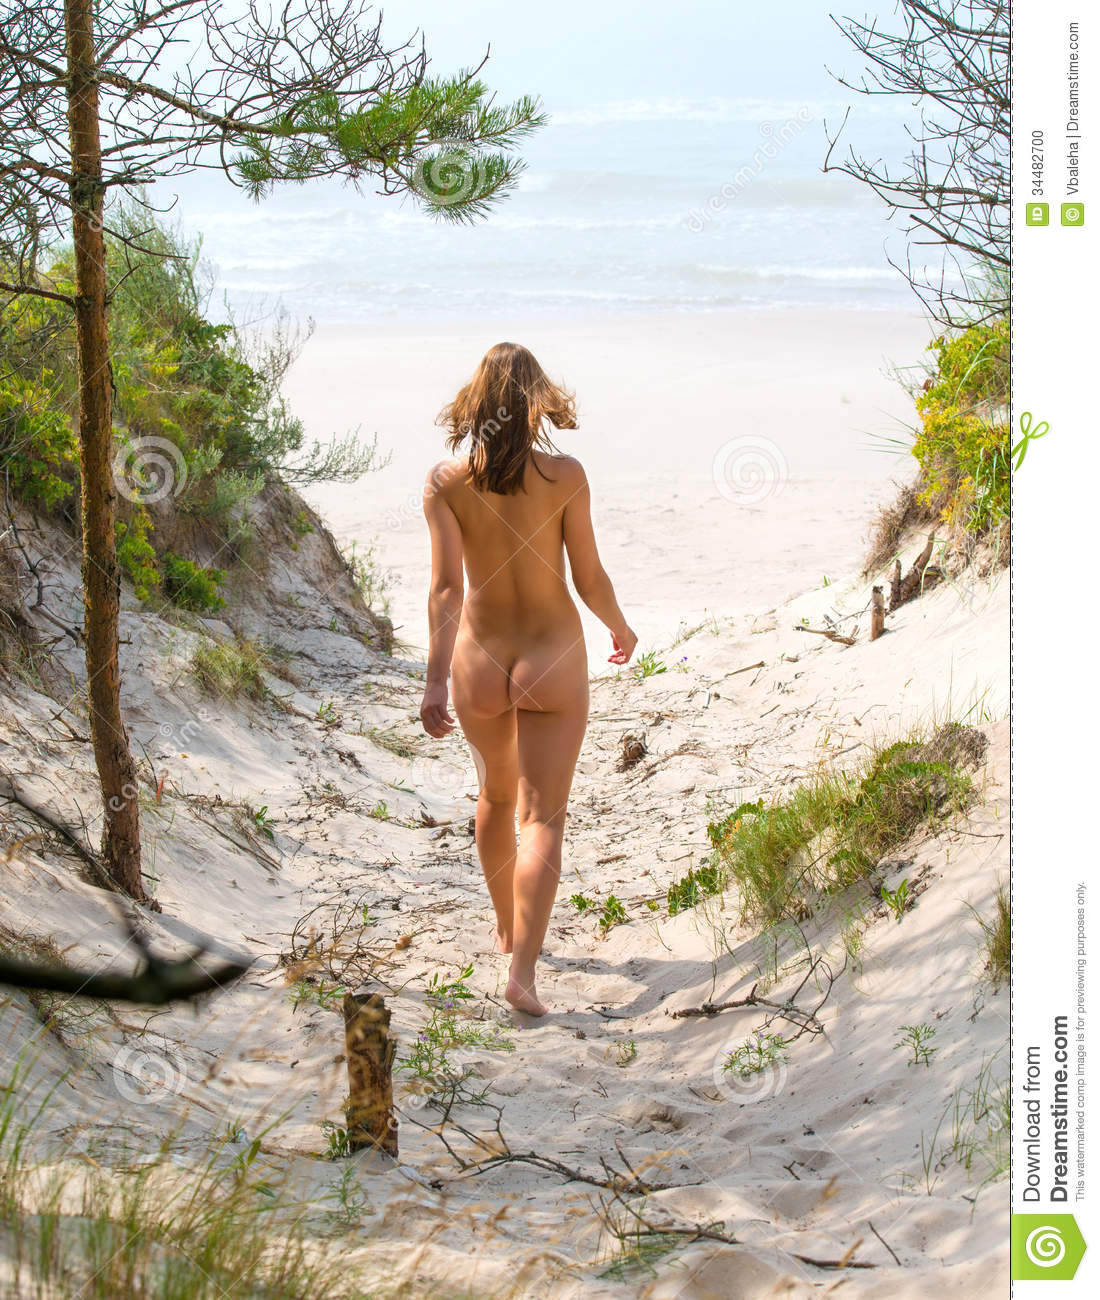 hot women naked walking